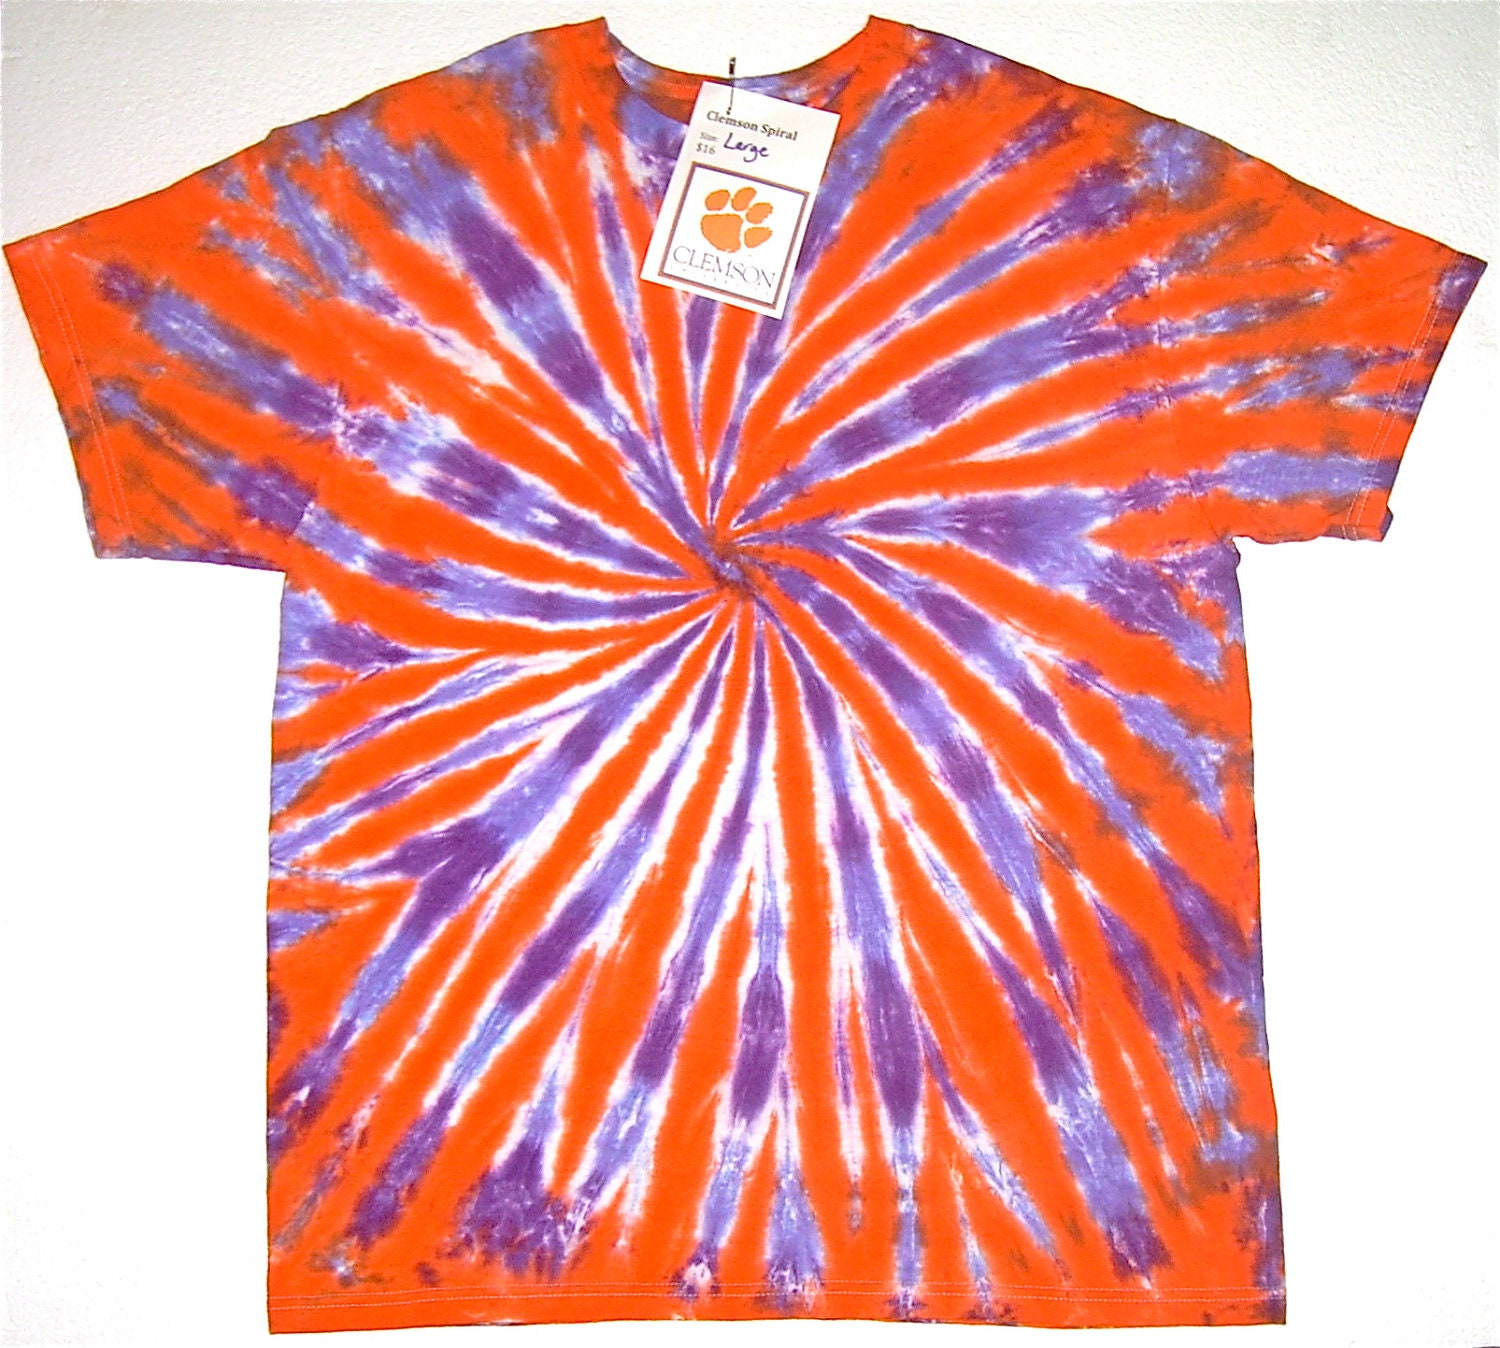 clemson tie dye shirt orange and purple tiger stripe spiral